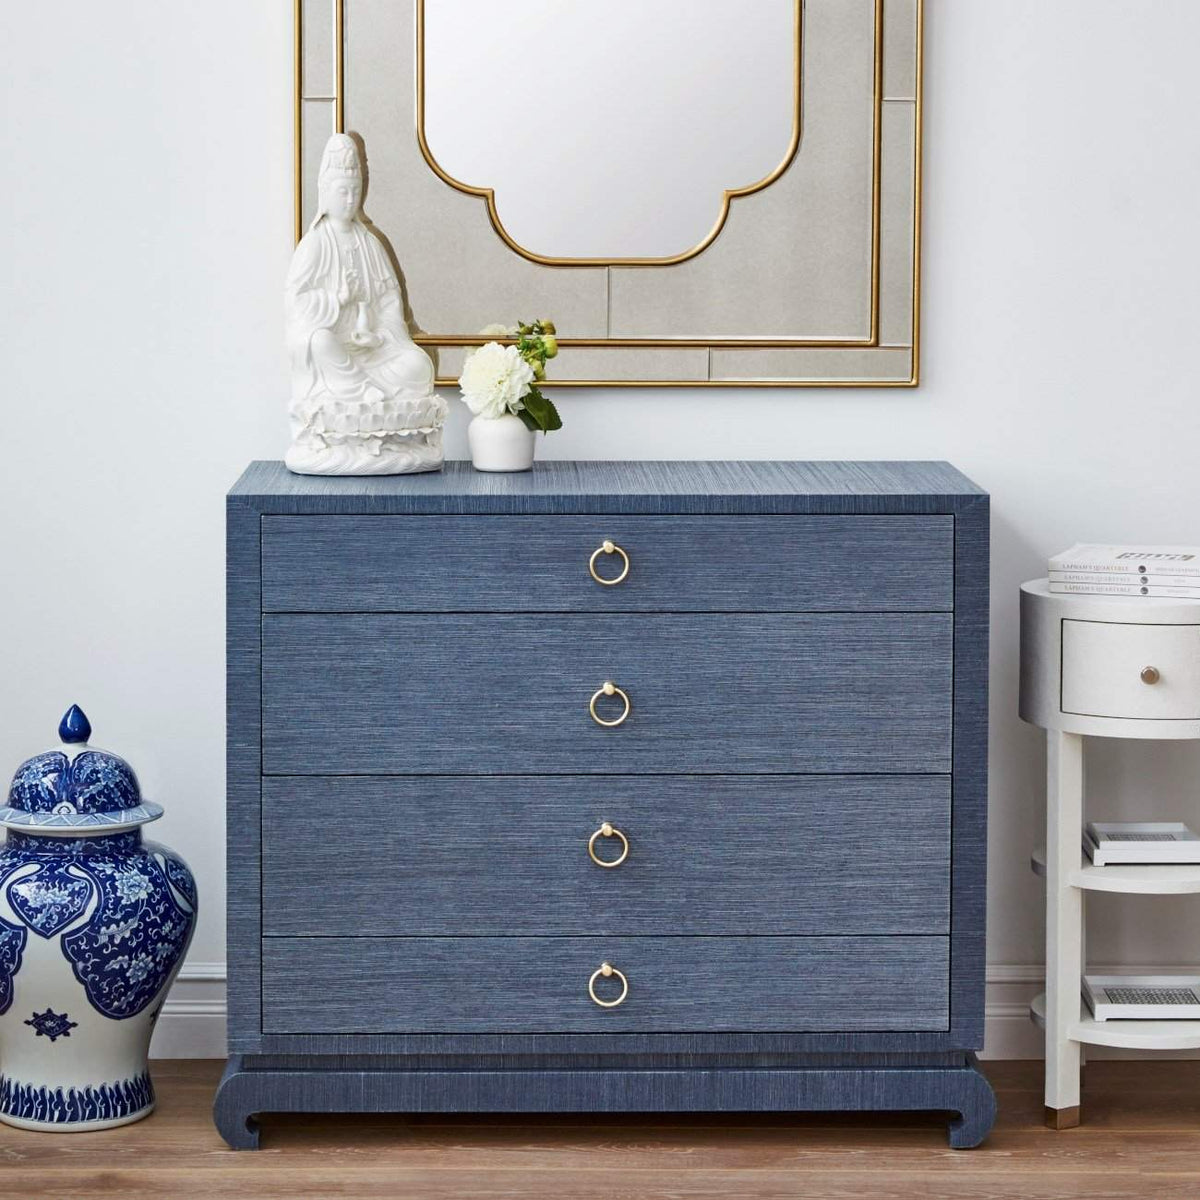 Bungalow 5 - MING LARGE 4-DRAWER in NAVY BLUE-Bungalow 5-Blue Hand Home